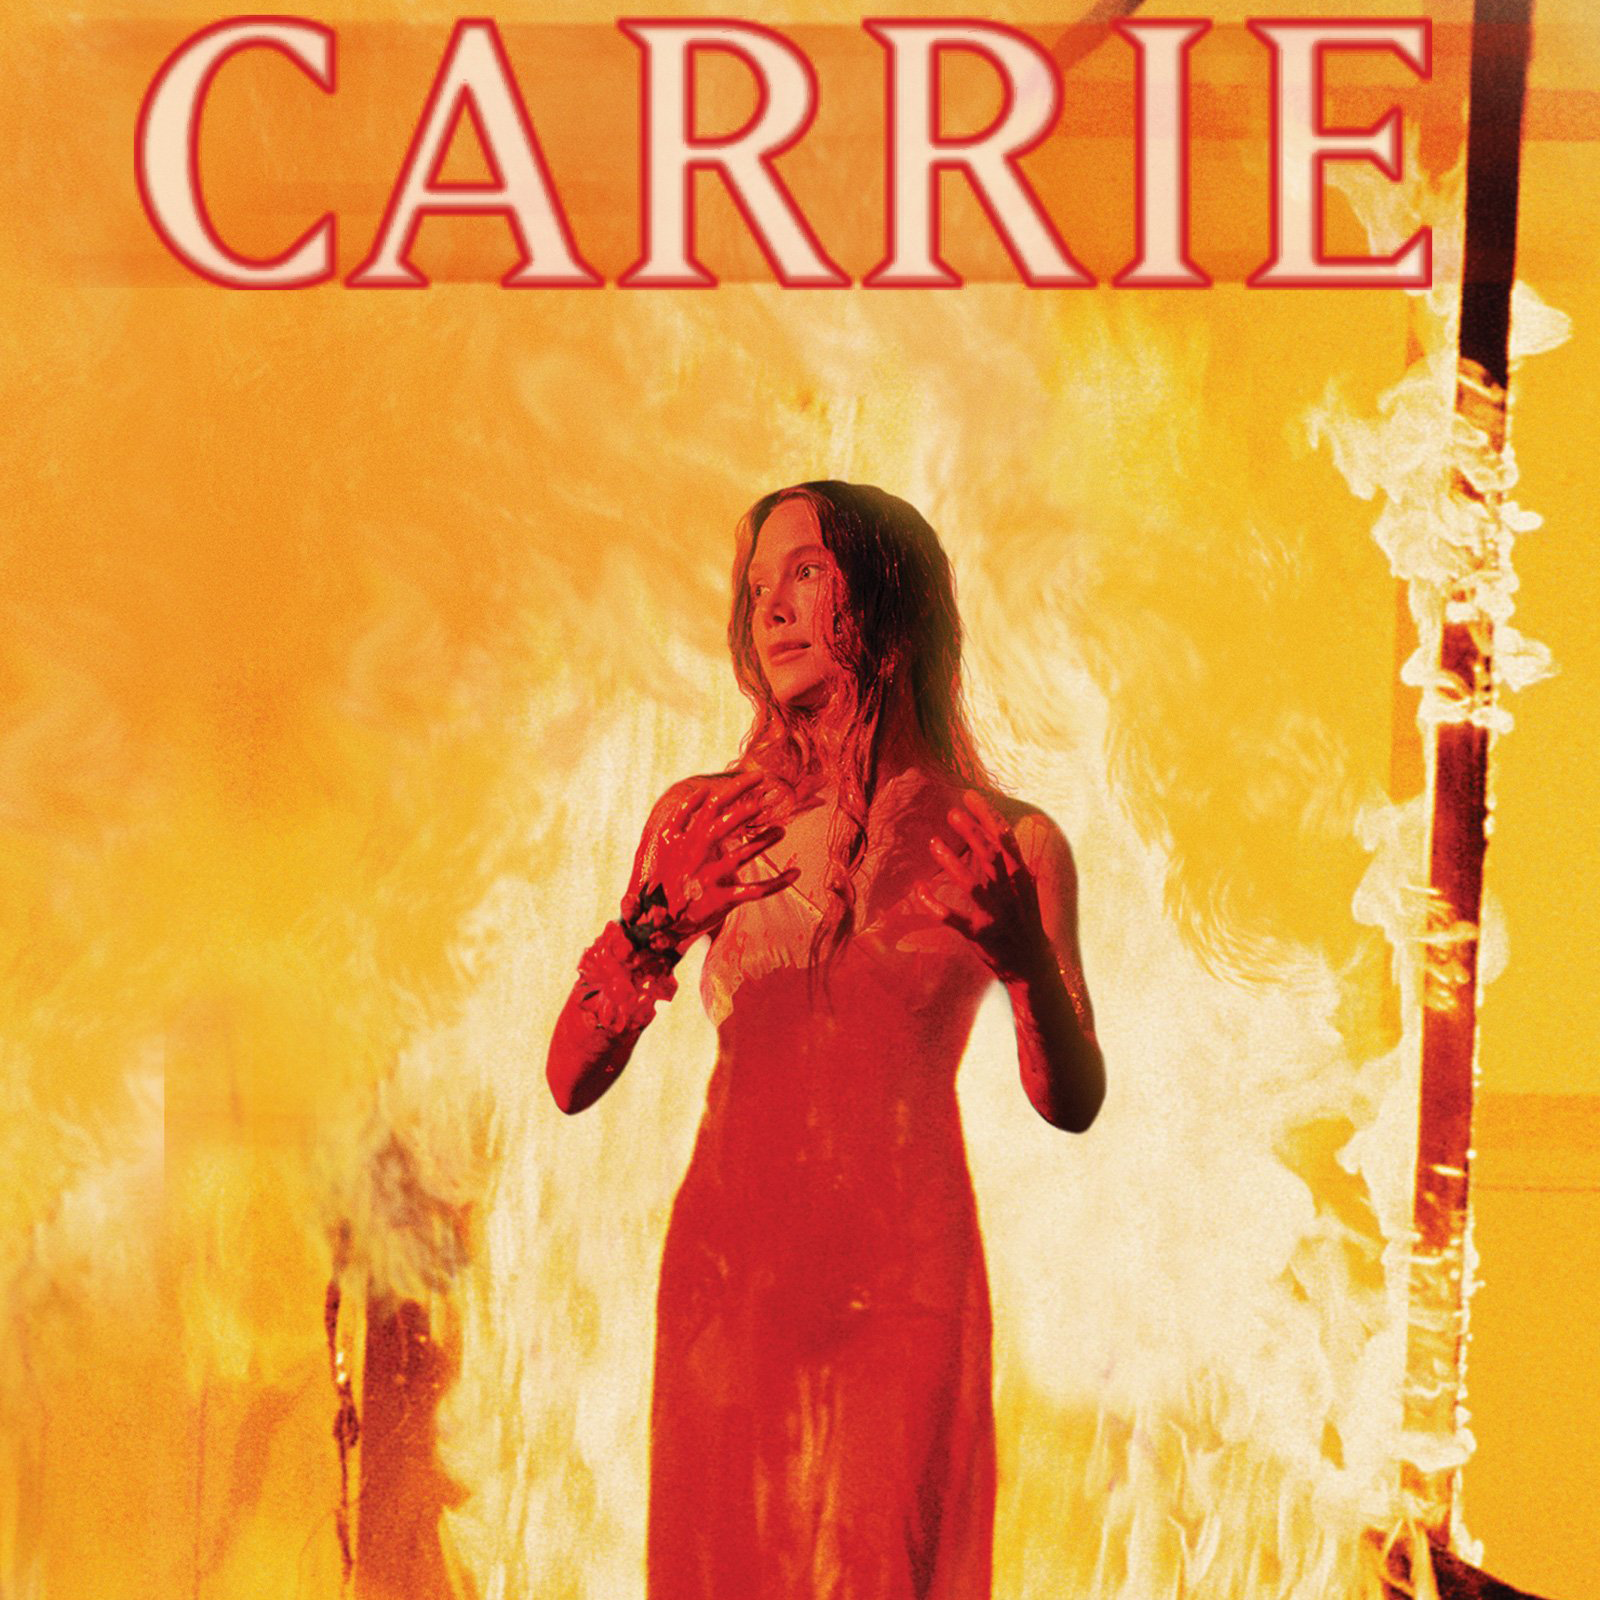 ISTYA Carrie 1976 Movie Review